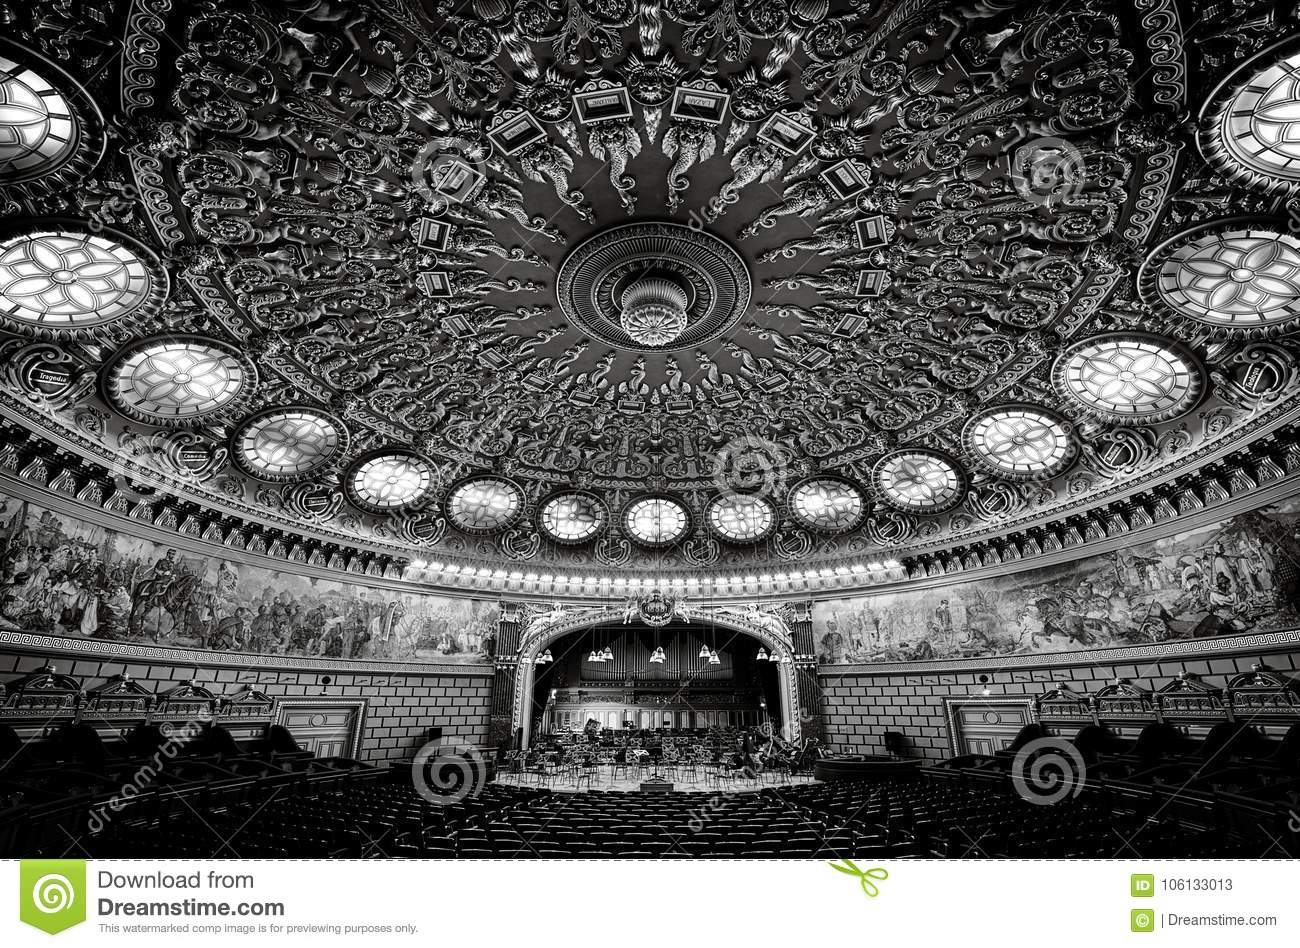 Building. Landmark. Romanian Atheneum, an important concert hall and a landmark in Bucharest, Romania